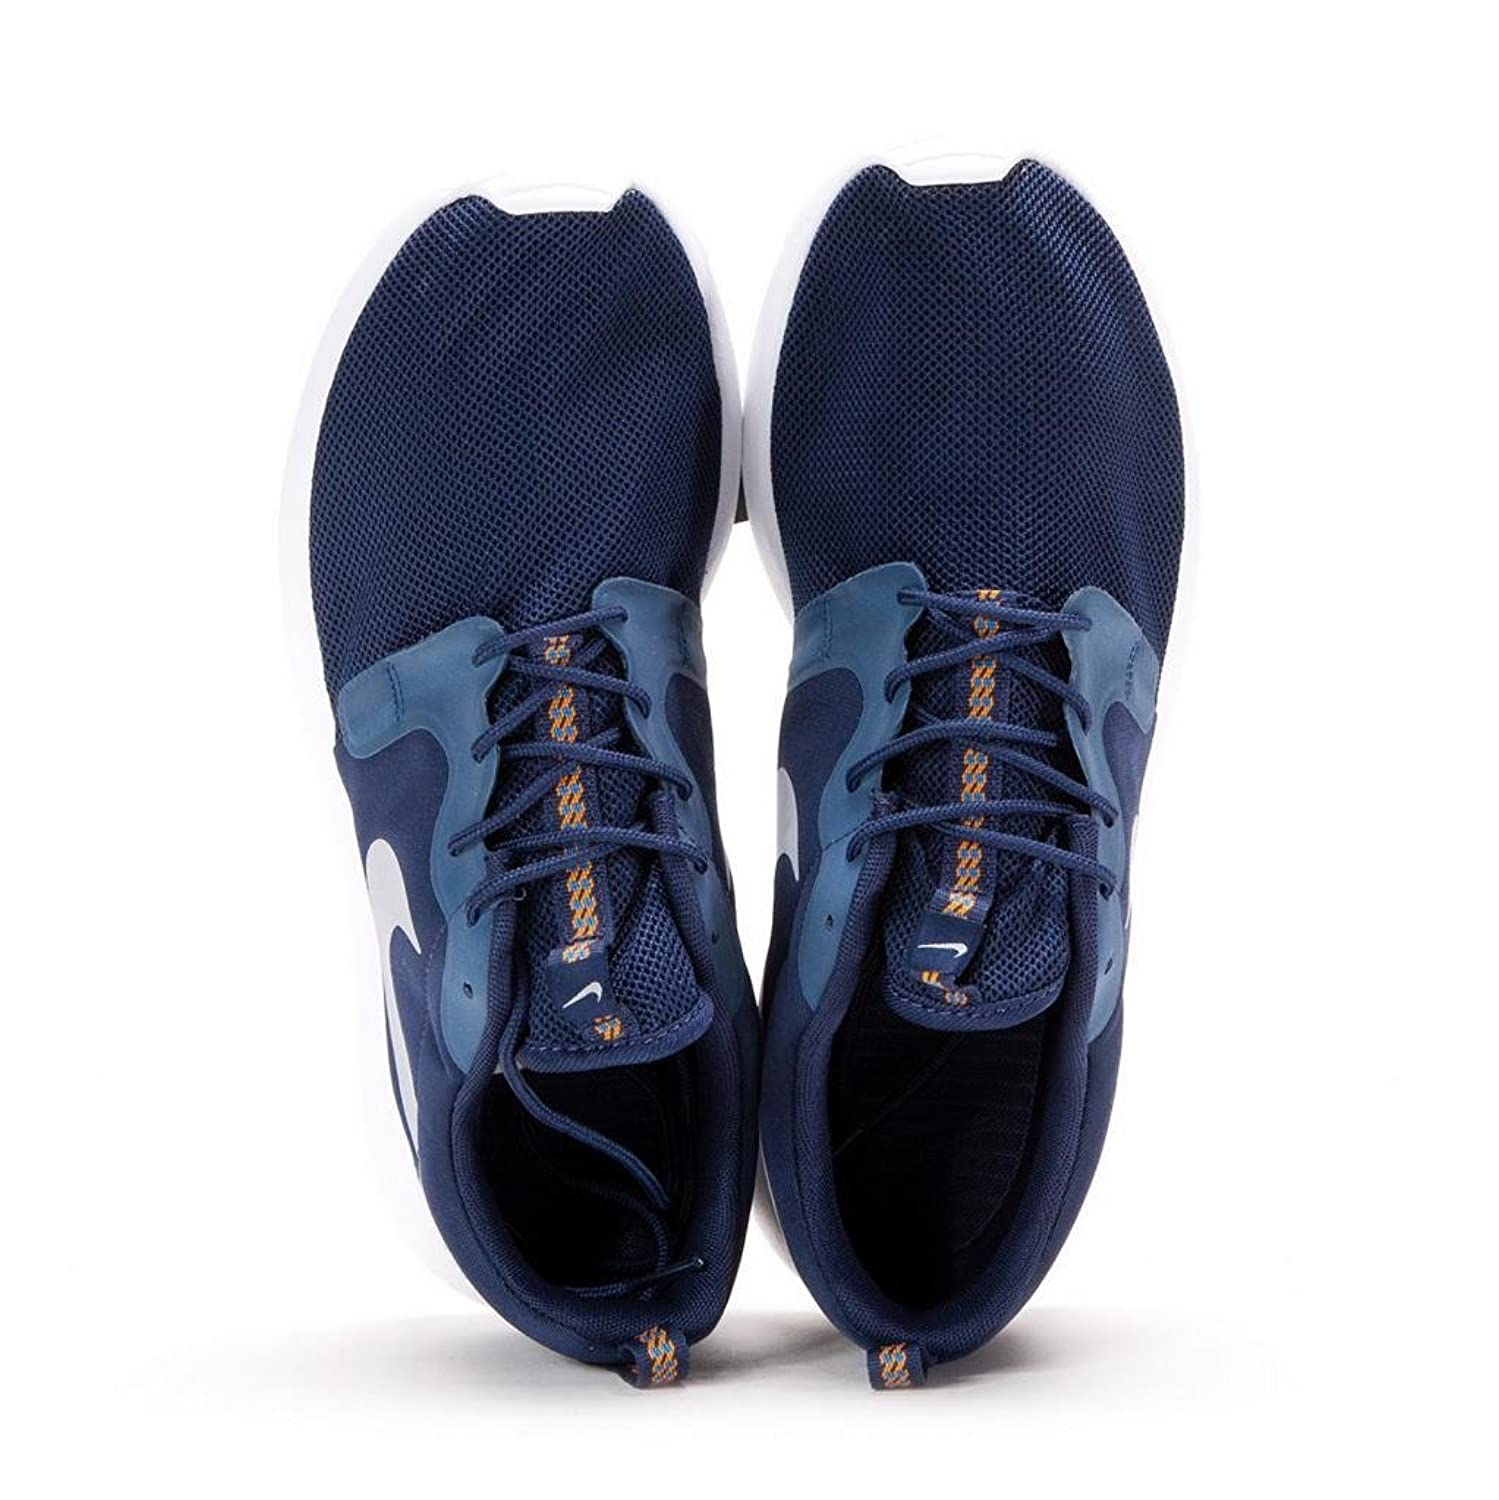 yhvlh Nike Roshe Run Hyperfuse Mens Running Trainers Shoes Lace Ups Size